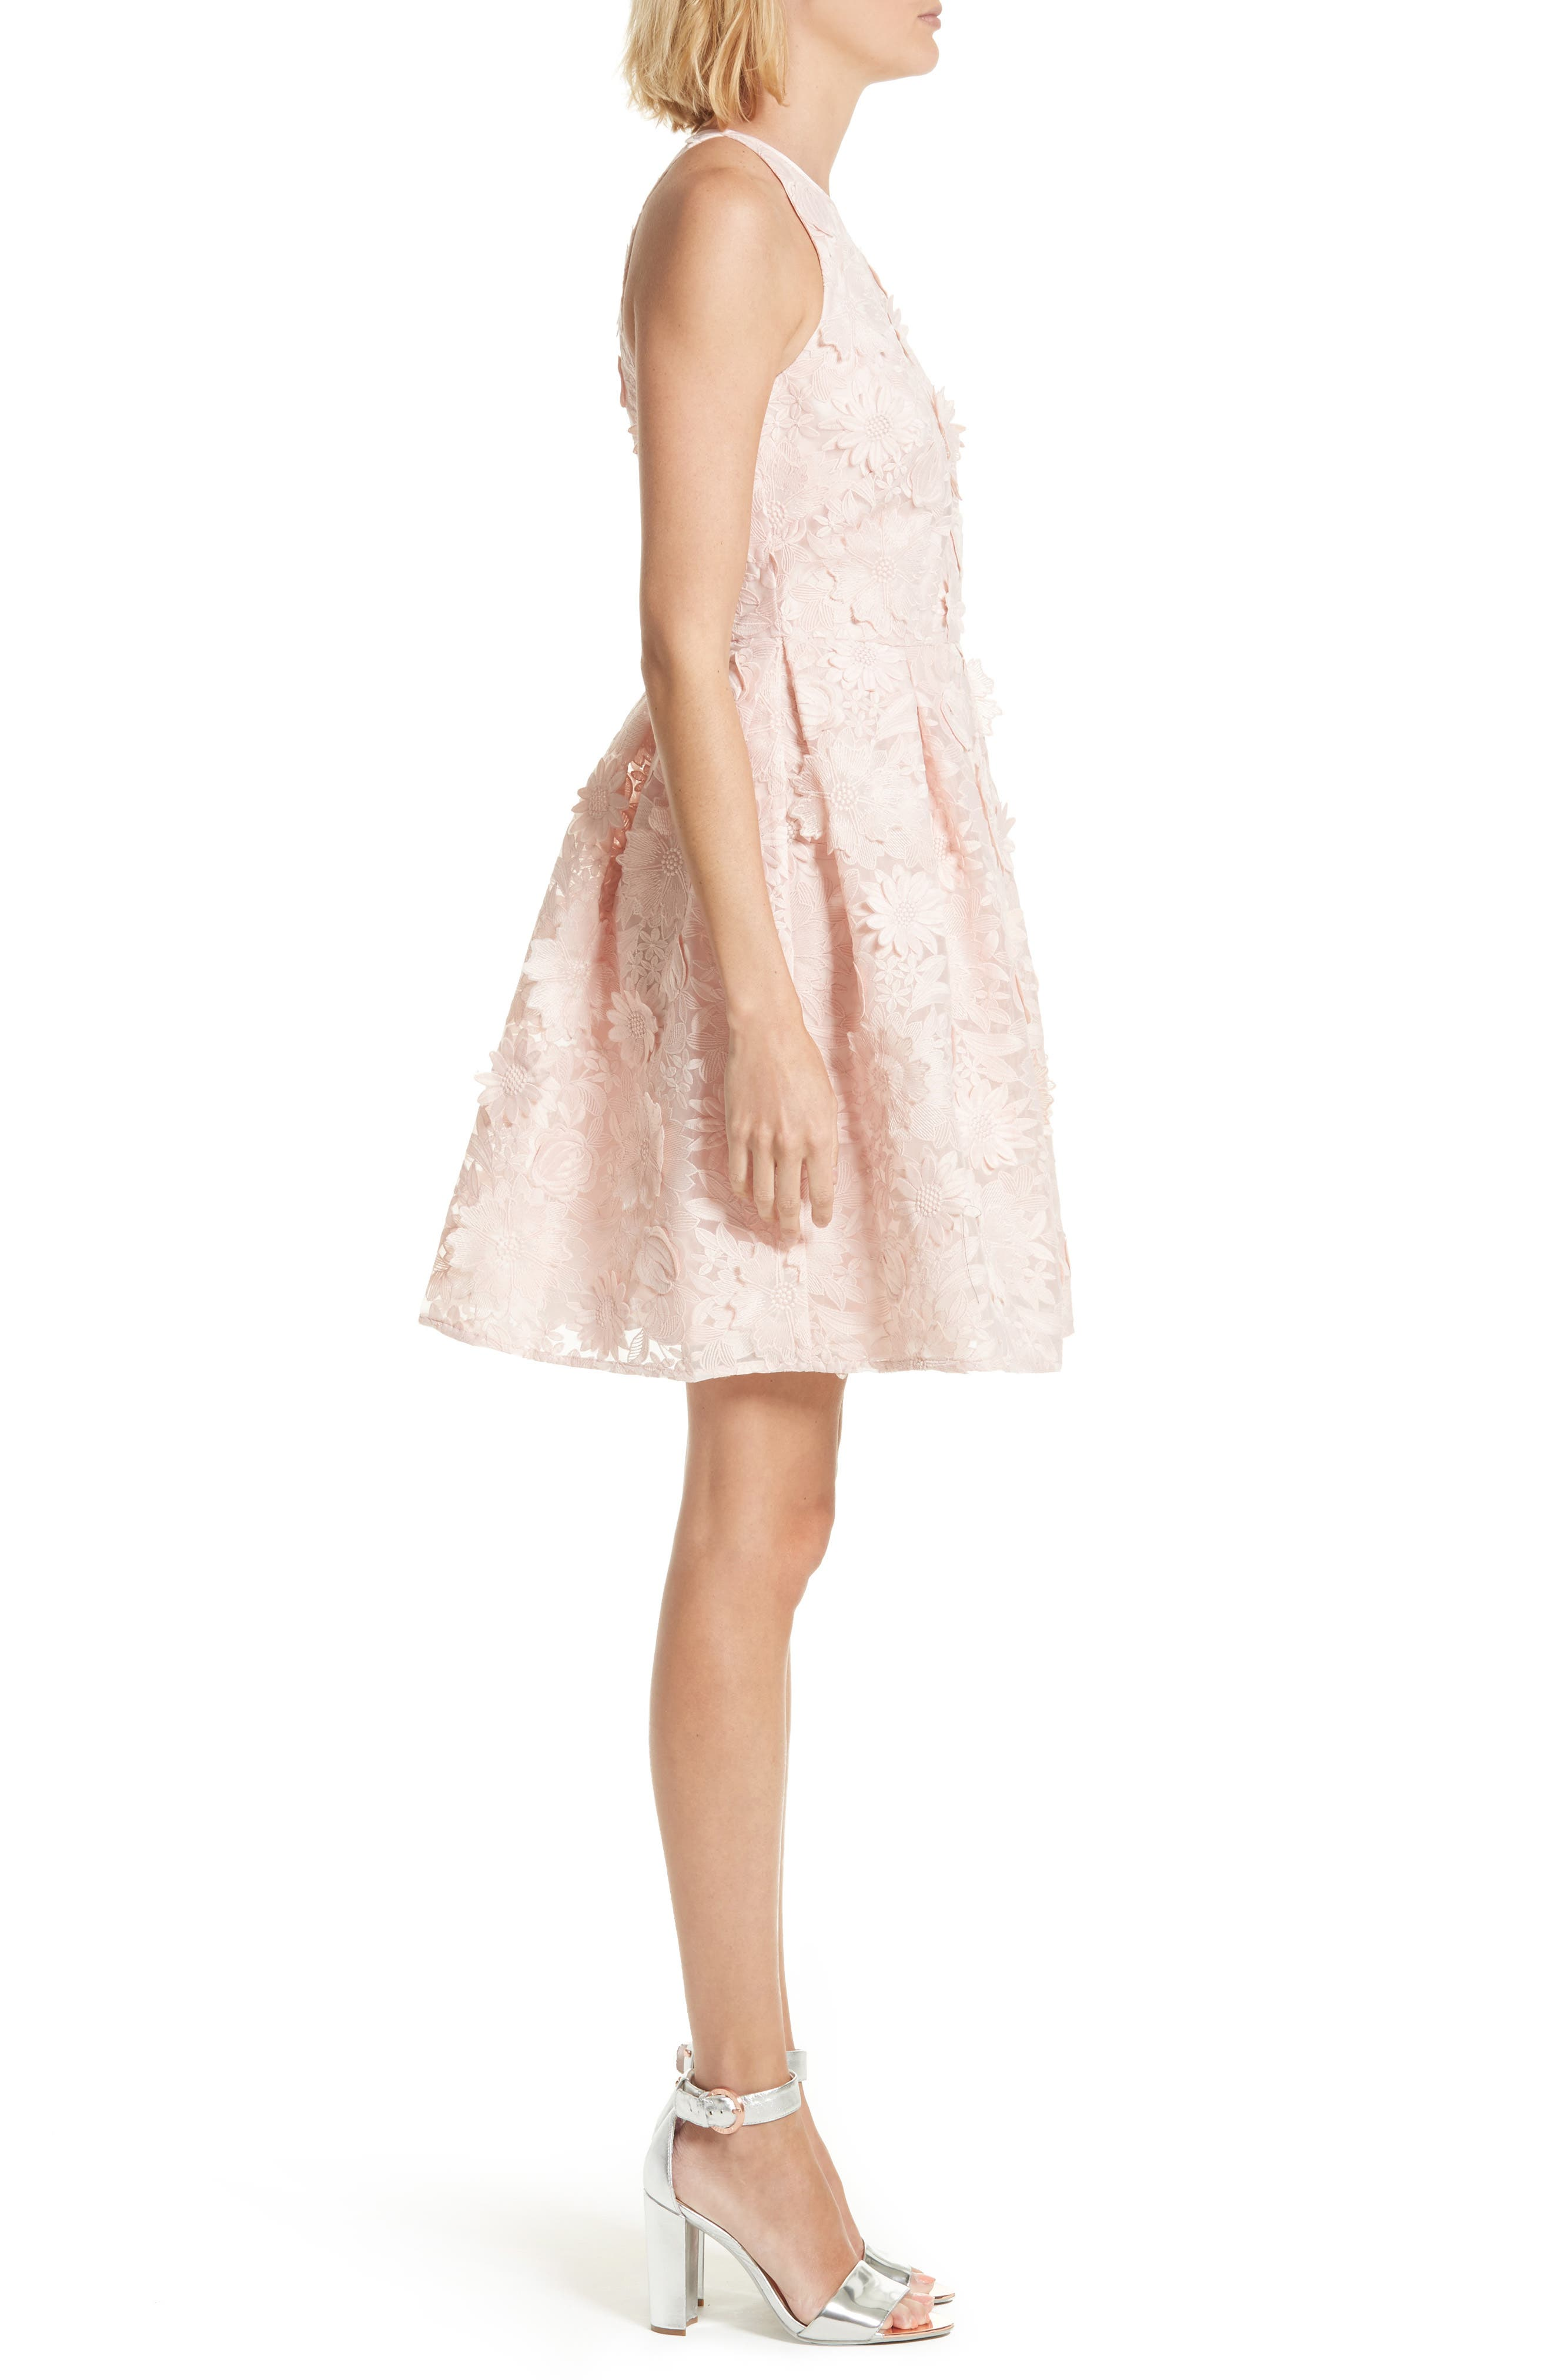 Sweetee Lace Skater Dress,                             Alternate thumbnail 3, color,                             682